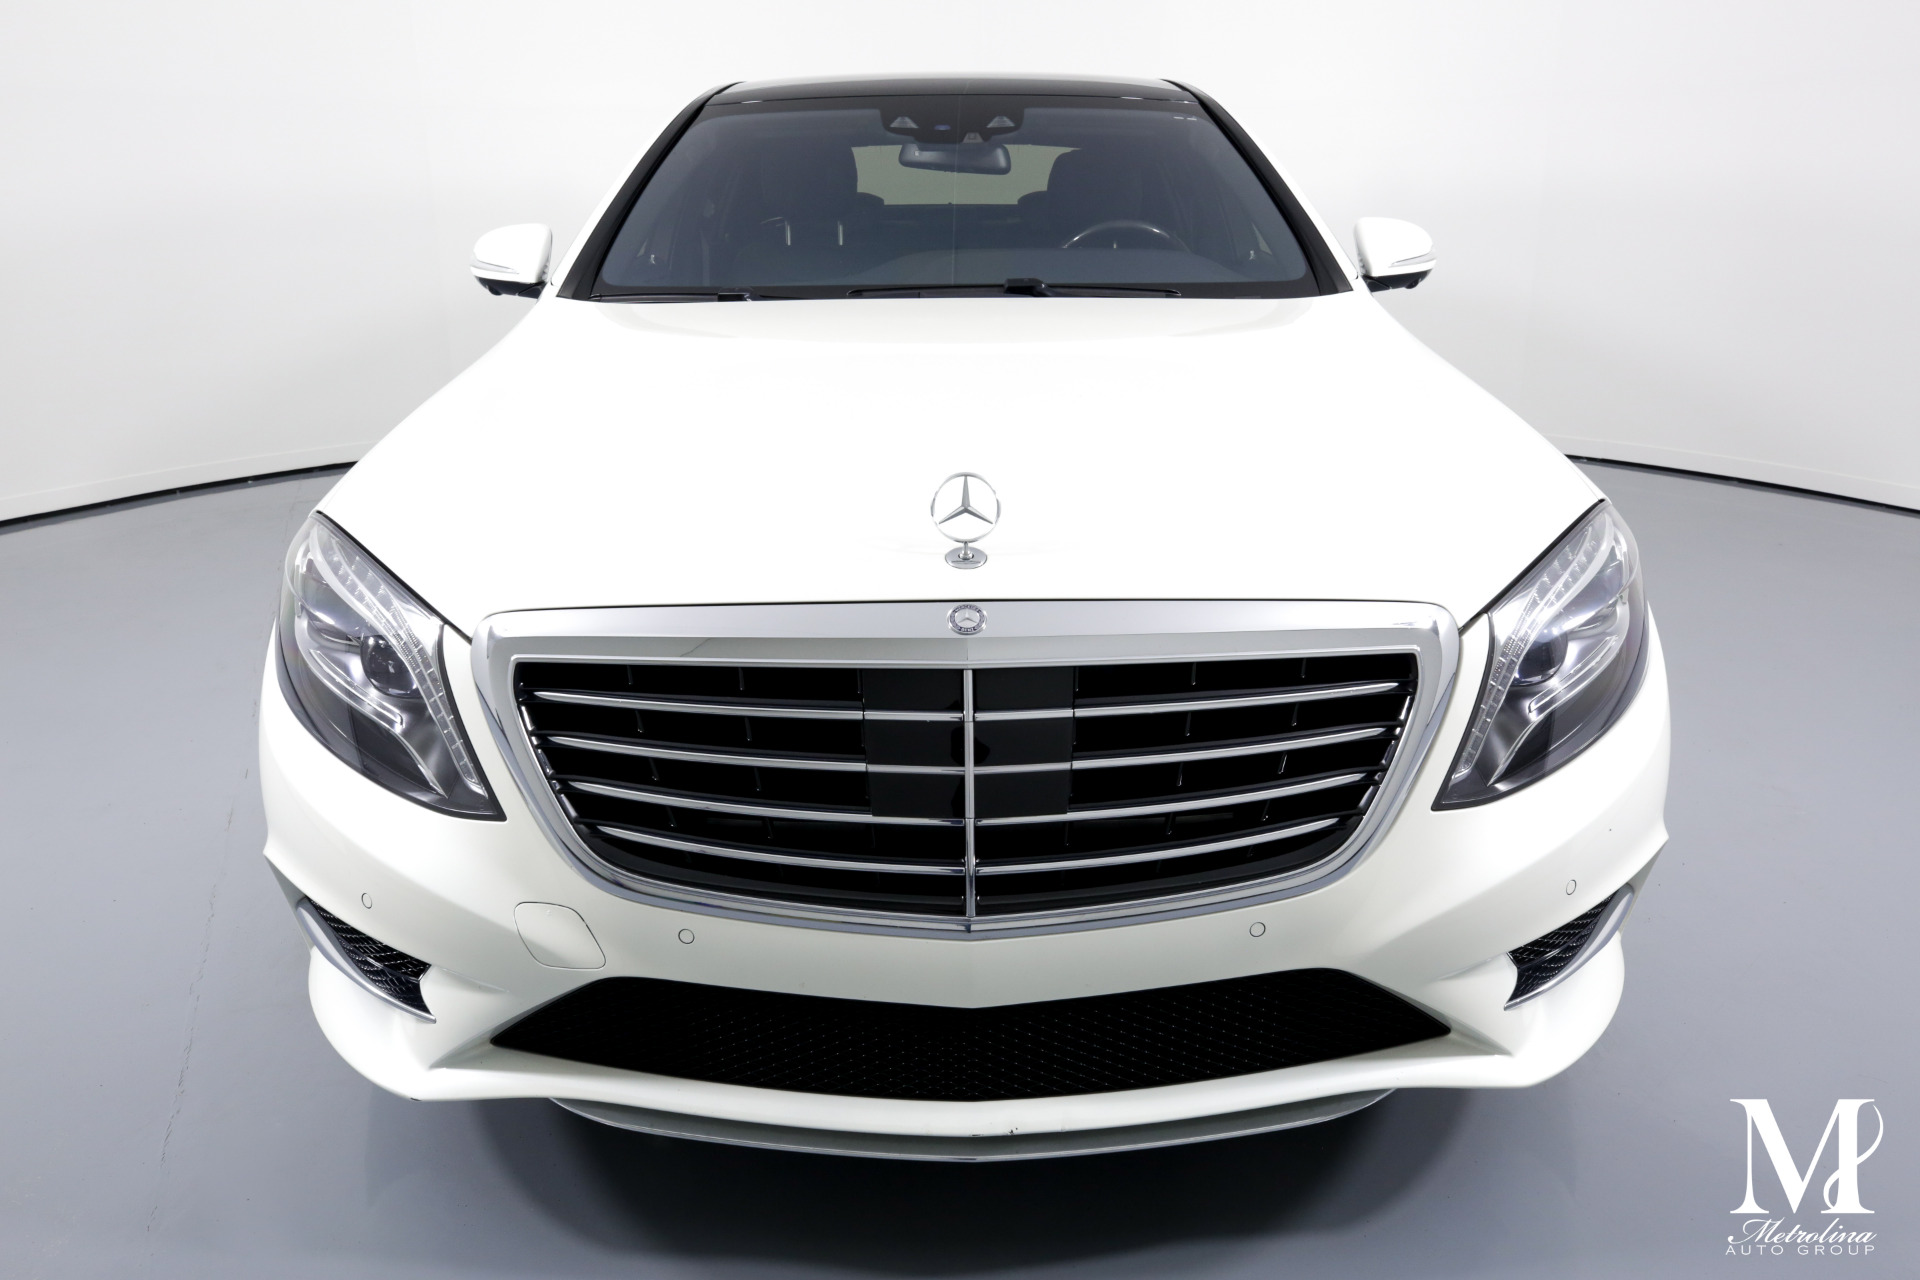 Used 2016 Mercedes-Benz S-Class S 550 for sale $45,996 at Metrolina Auto Group in Charlotte NC 28217 - 3